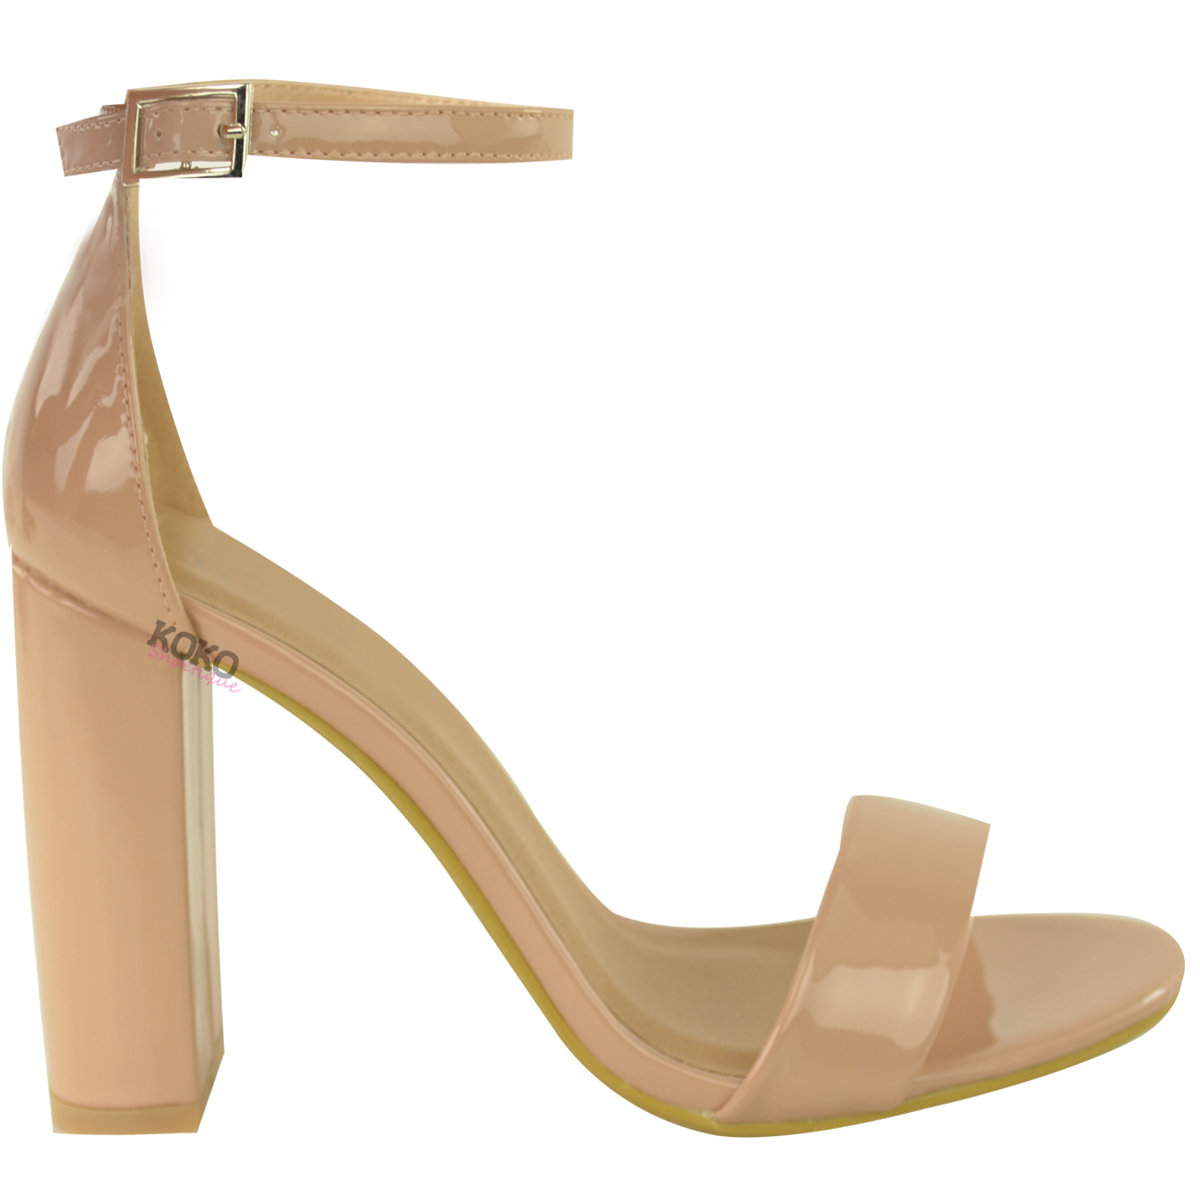 Womens-Ladies-Block-High-Heels-Ankle-Strap-Sexy-Open-Toe-Sandals-Shoes-Size-New miniatuur 49